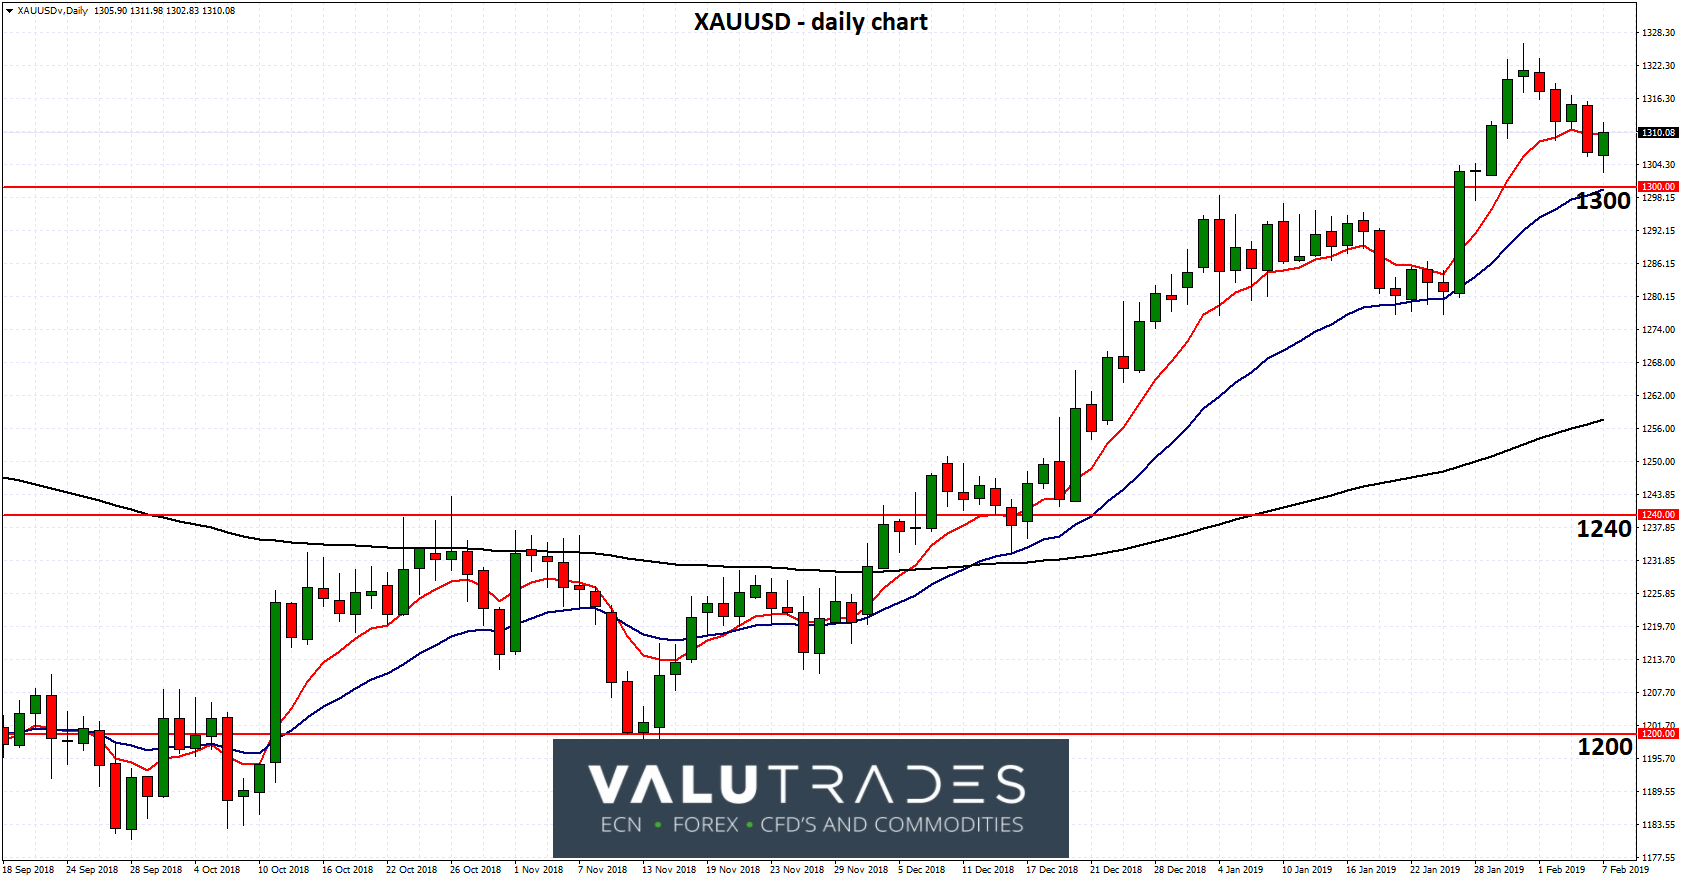 XAUUSD - Looking for Support at 1300 as Global Growth on Radar